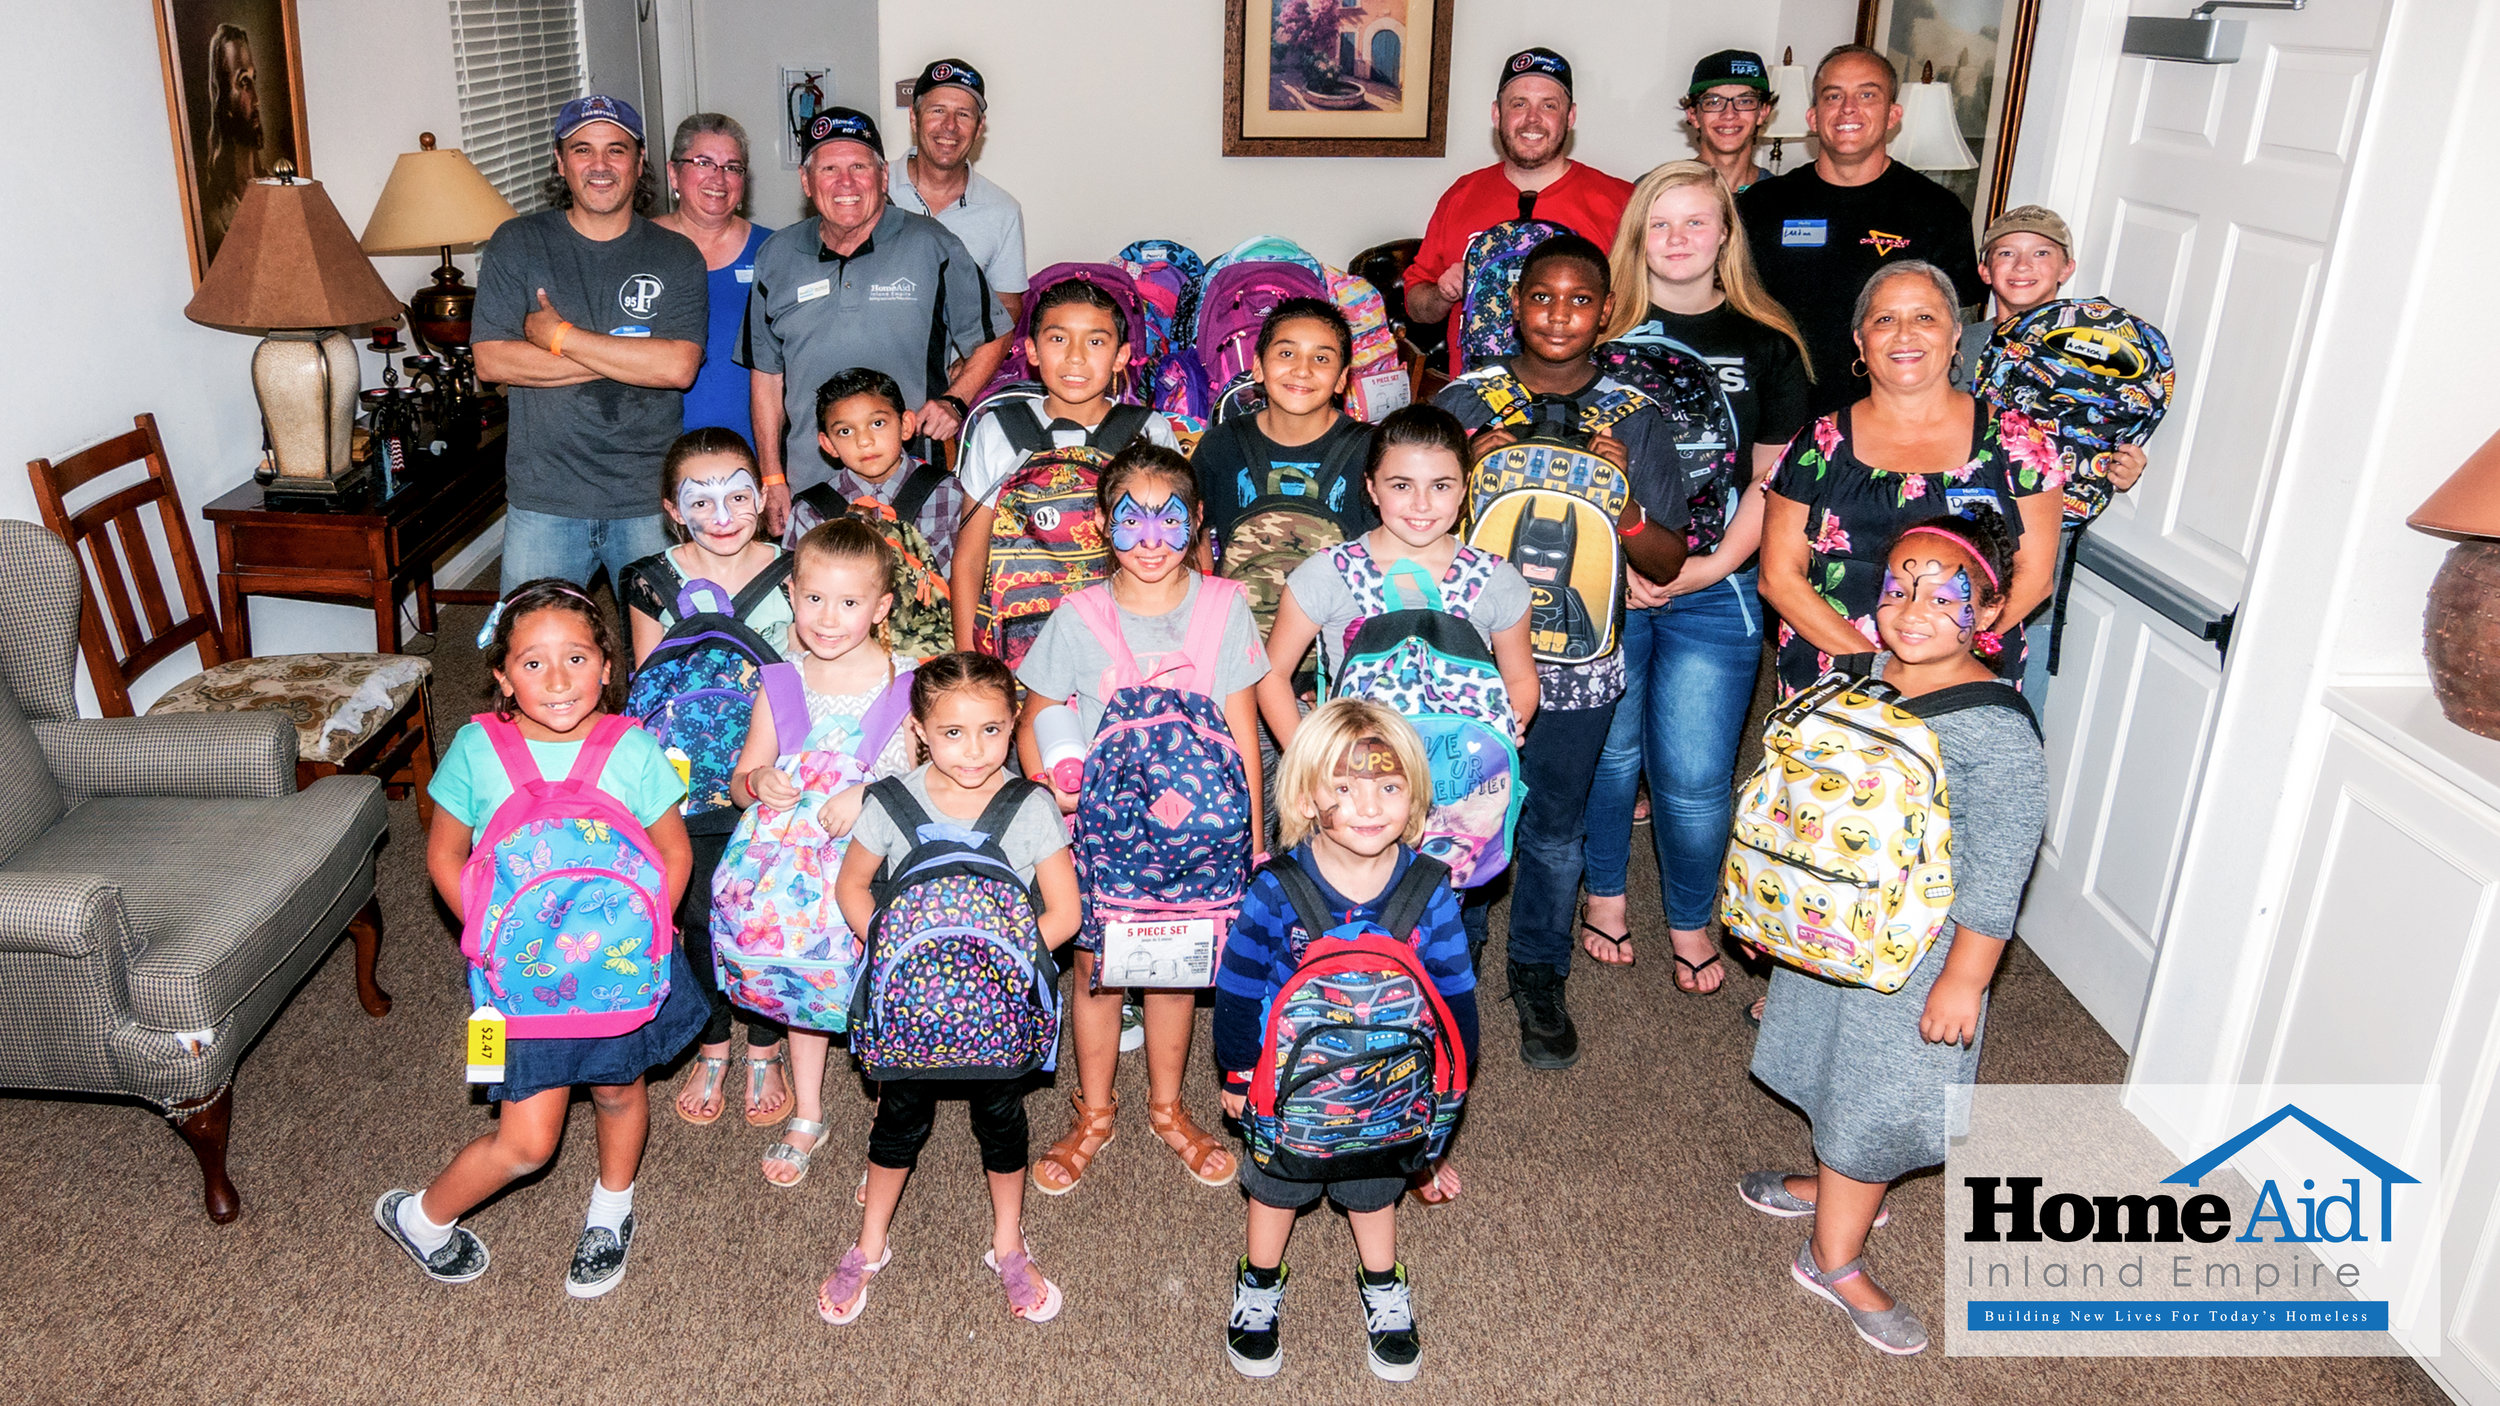 HomeAid Inland Empire Full Bellies Warm Hearts event with the kids receving their backpacks and school supplies, some of which were donated at the 2017 Backyard BBQ!